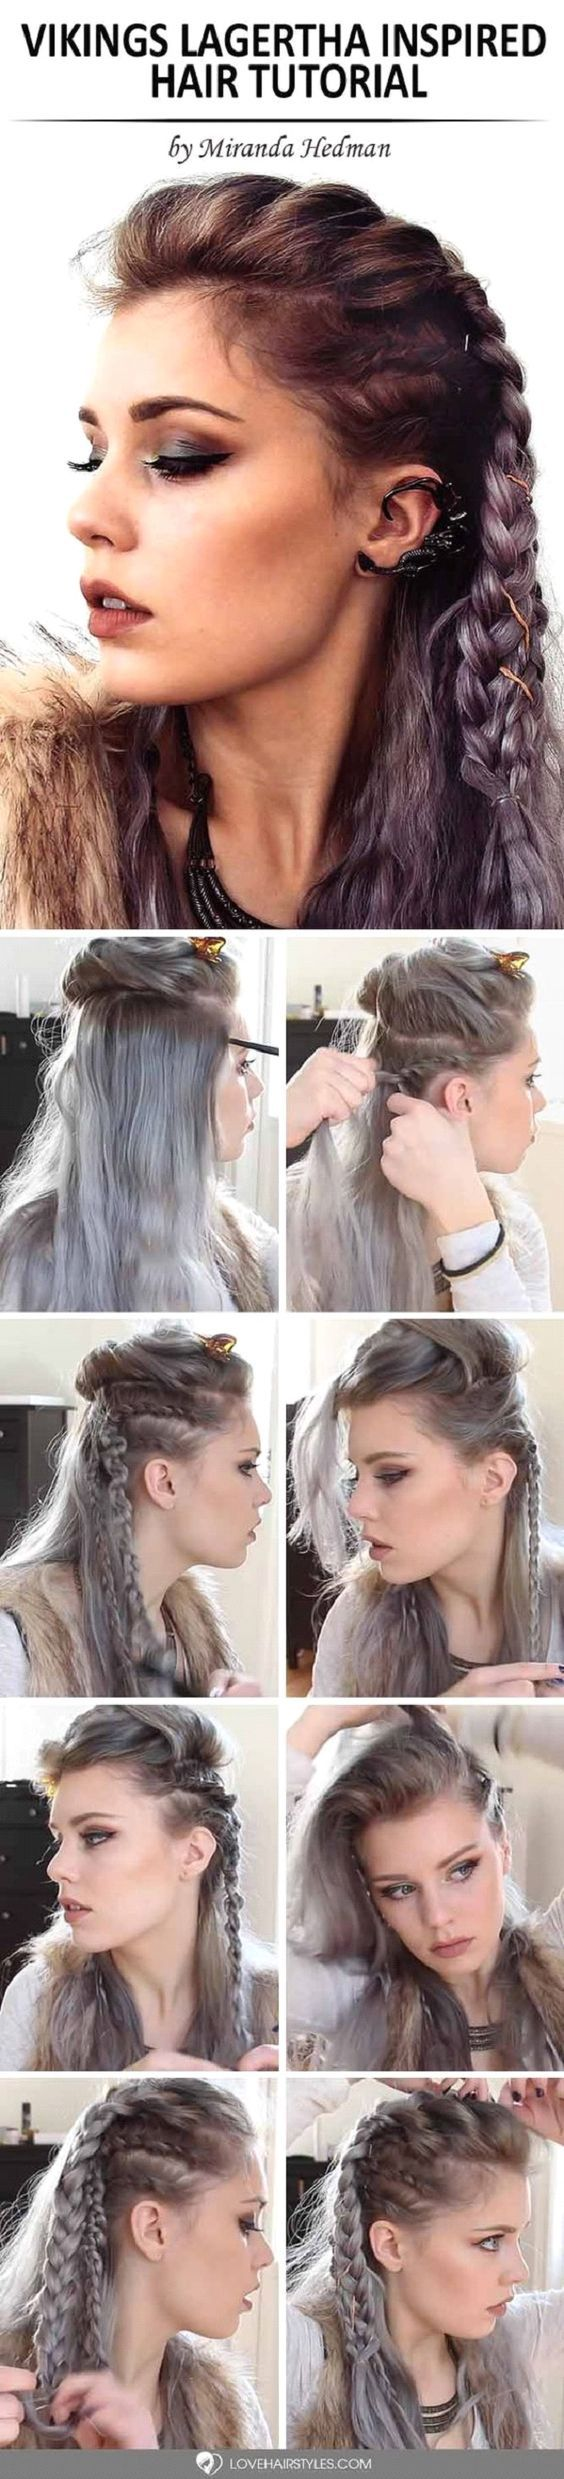 Get the style of lagertha from vikings makeup mania mermaid